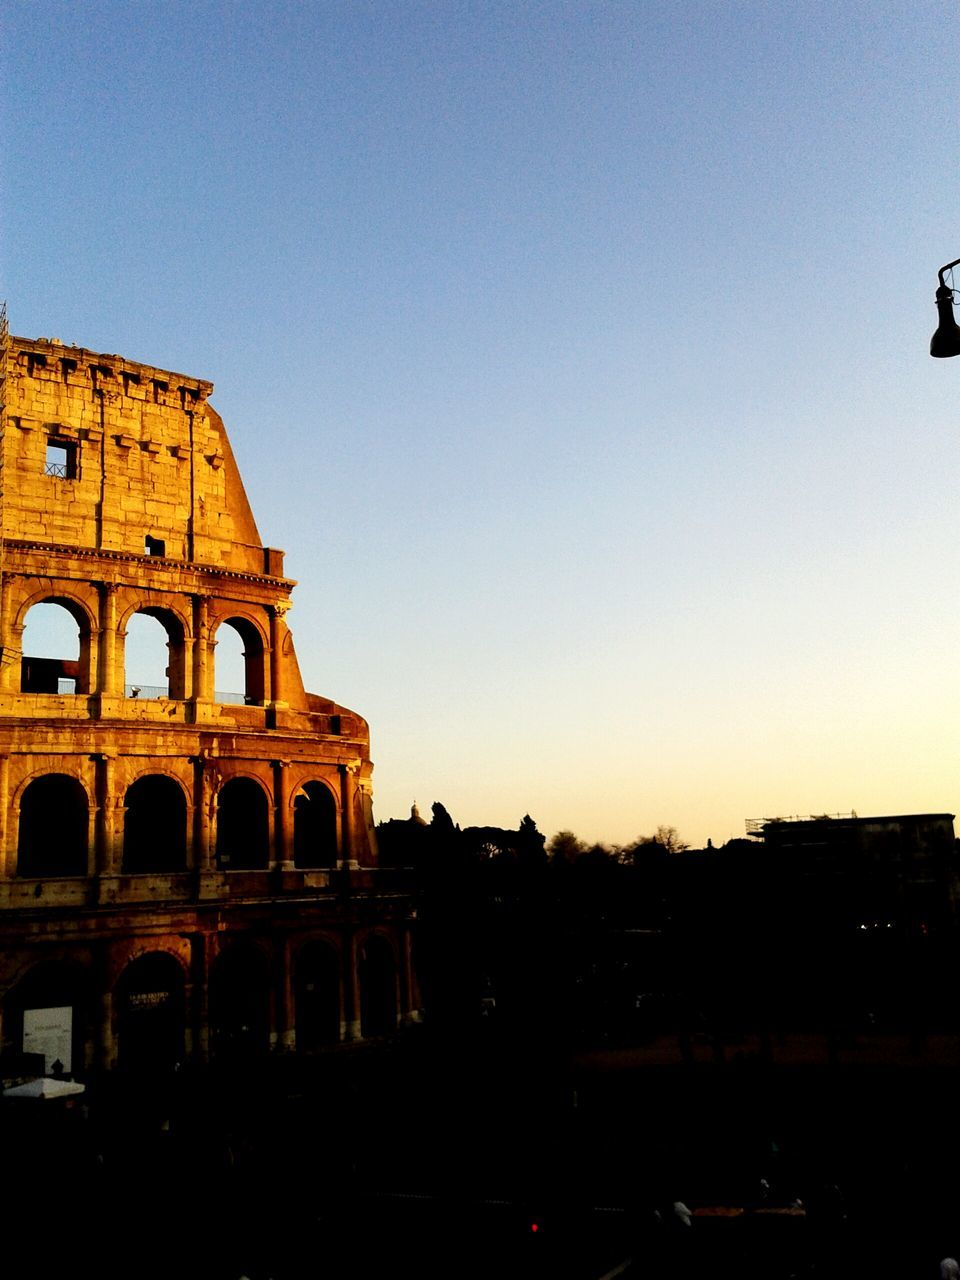 built structure, architecture, copy space, history, clear sky, ancient, travel destinations, building exterior, outdoors, arch, tourism, sunset, old ruin, sky, ancient civilization, no people, nature, day